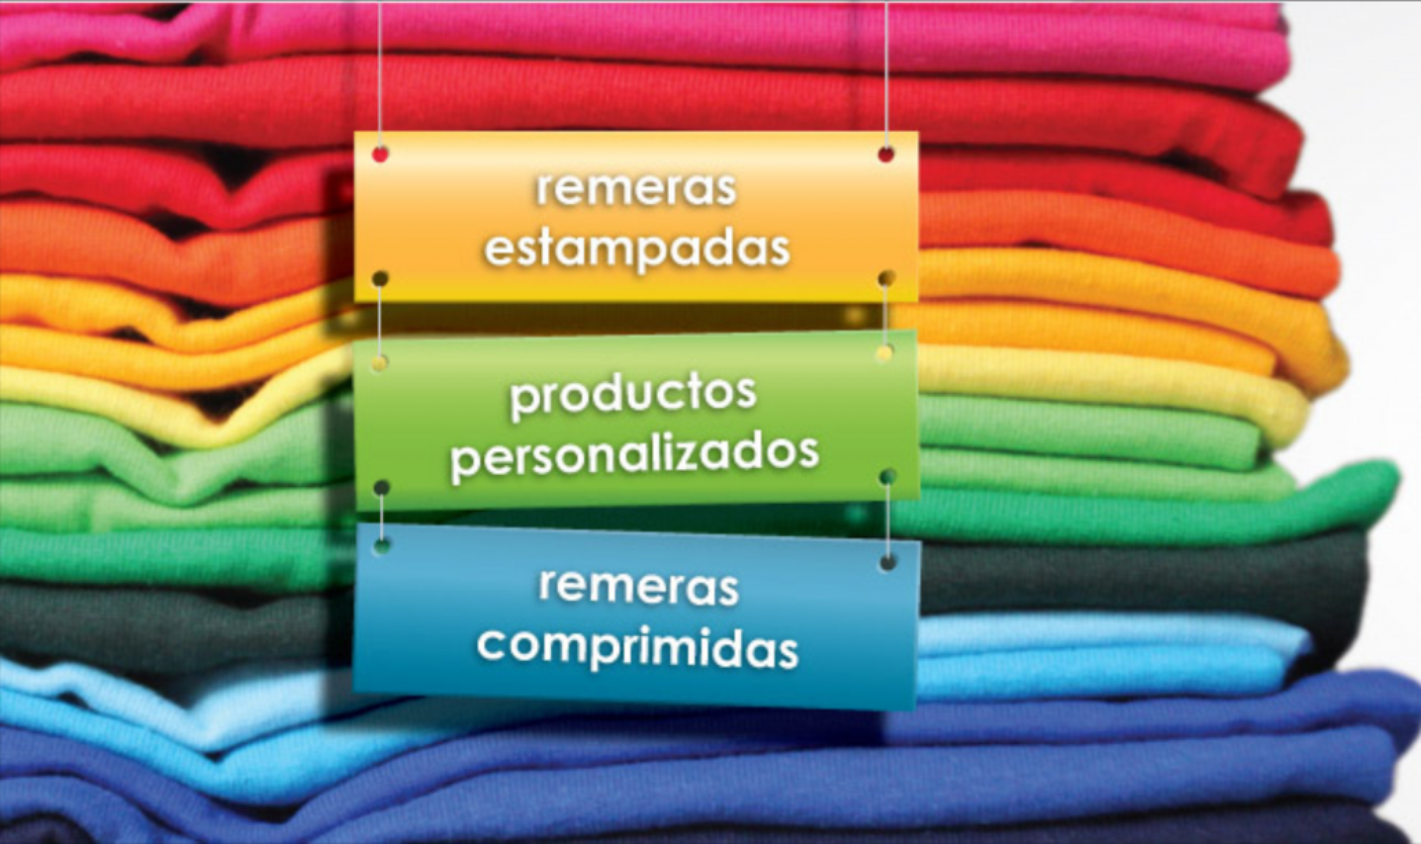 Remeras Estampadas